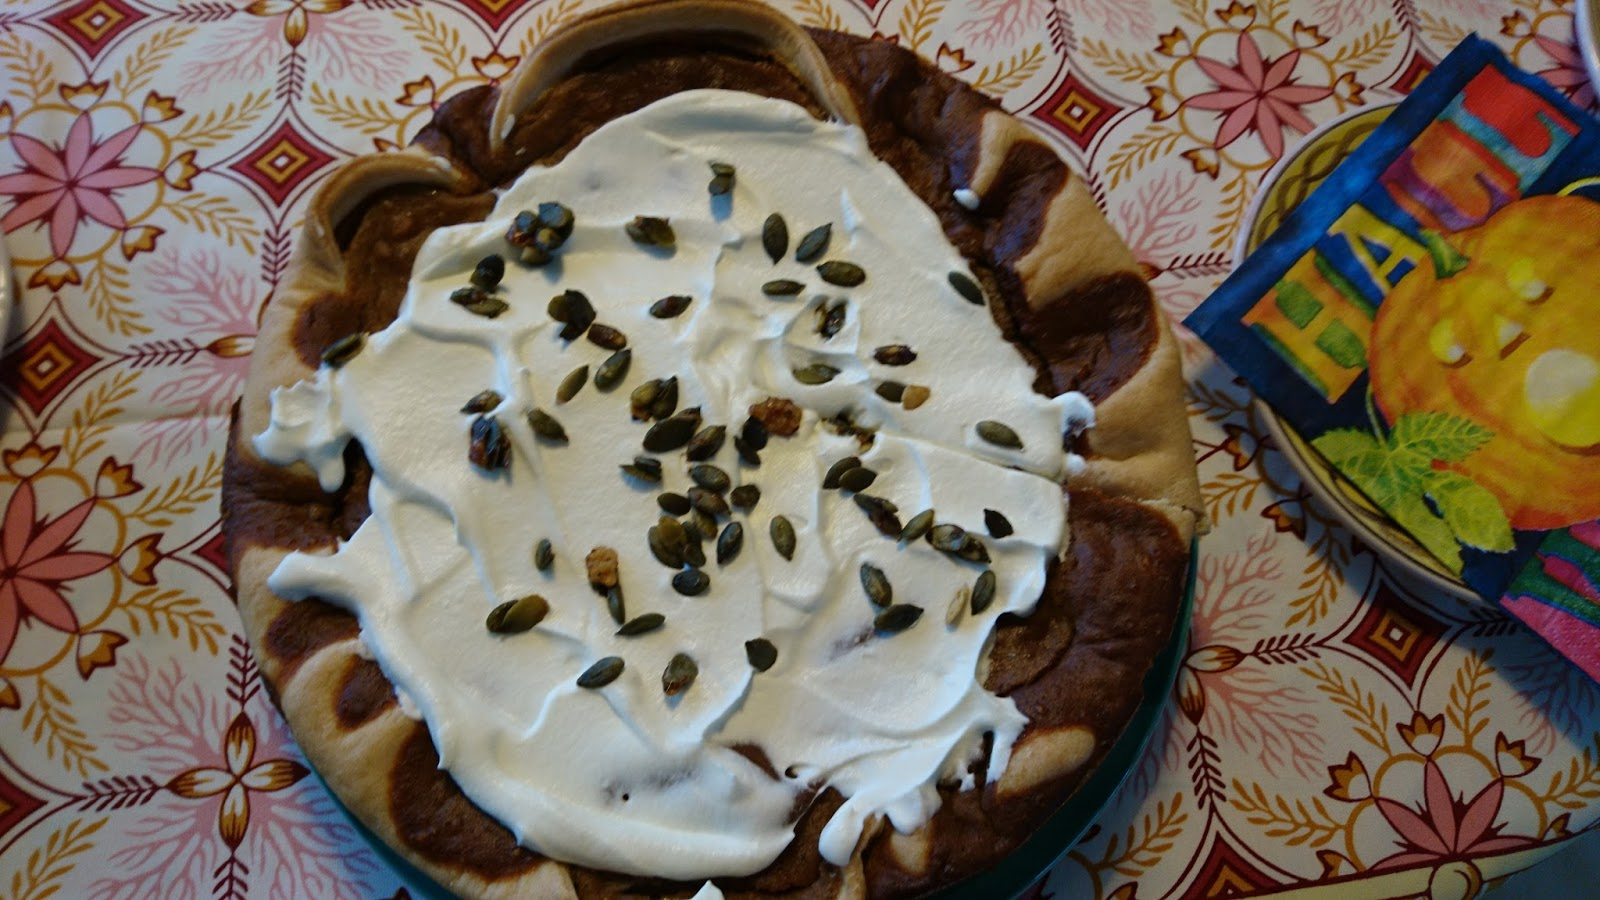 Kitchen of Kiki: Pumpkin pie with muscovado sugar